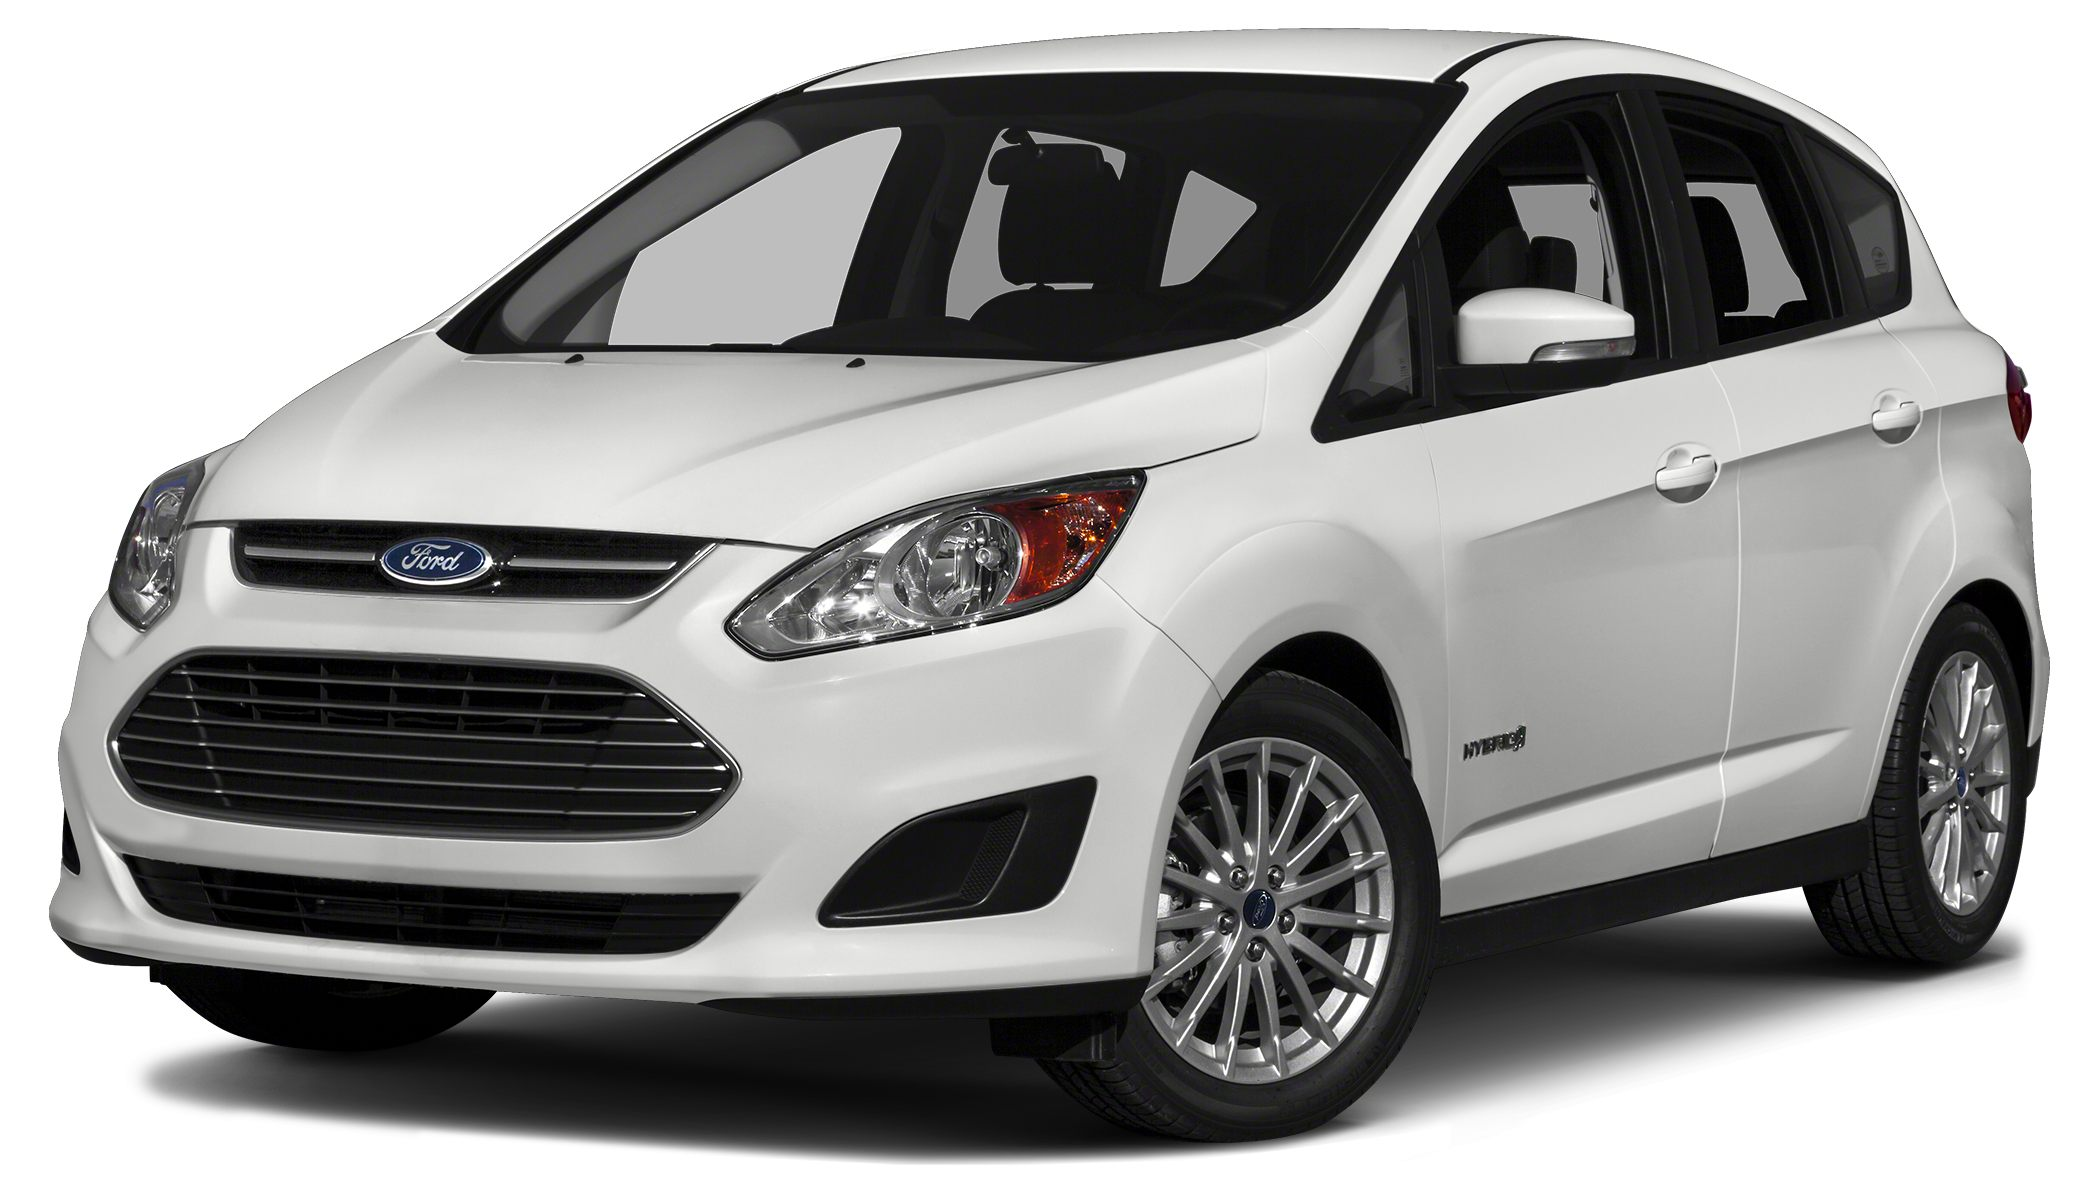 2015 Ford C-Max Hybrid SE The C-MAX Hybrid and C-MAX Energi plug-in hybrid - the all-new family of